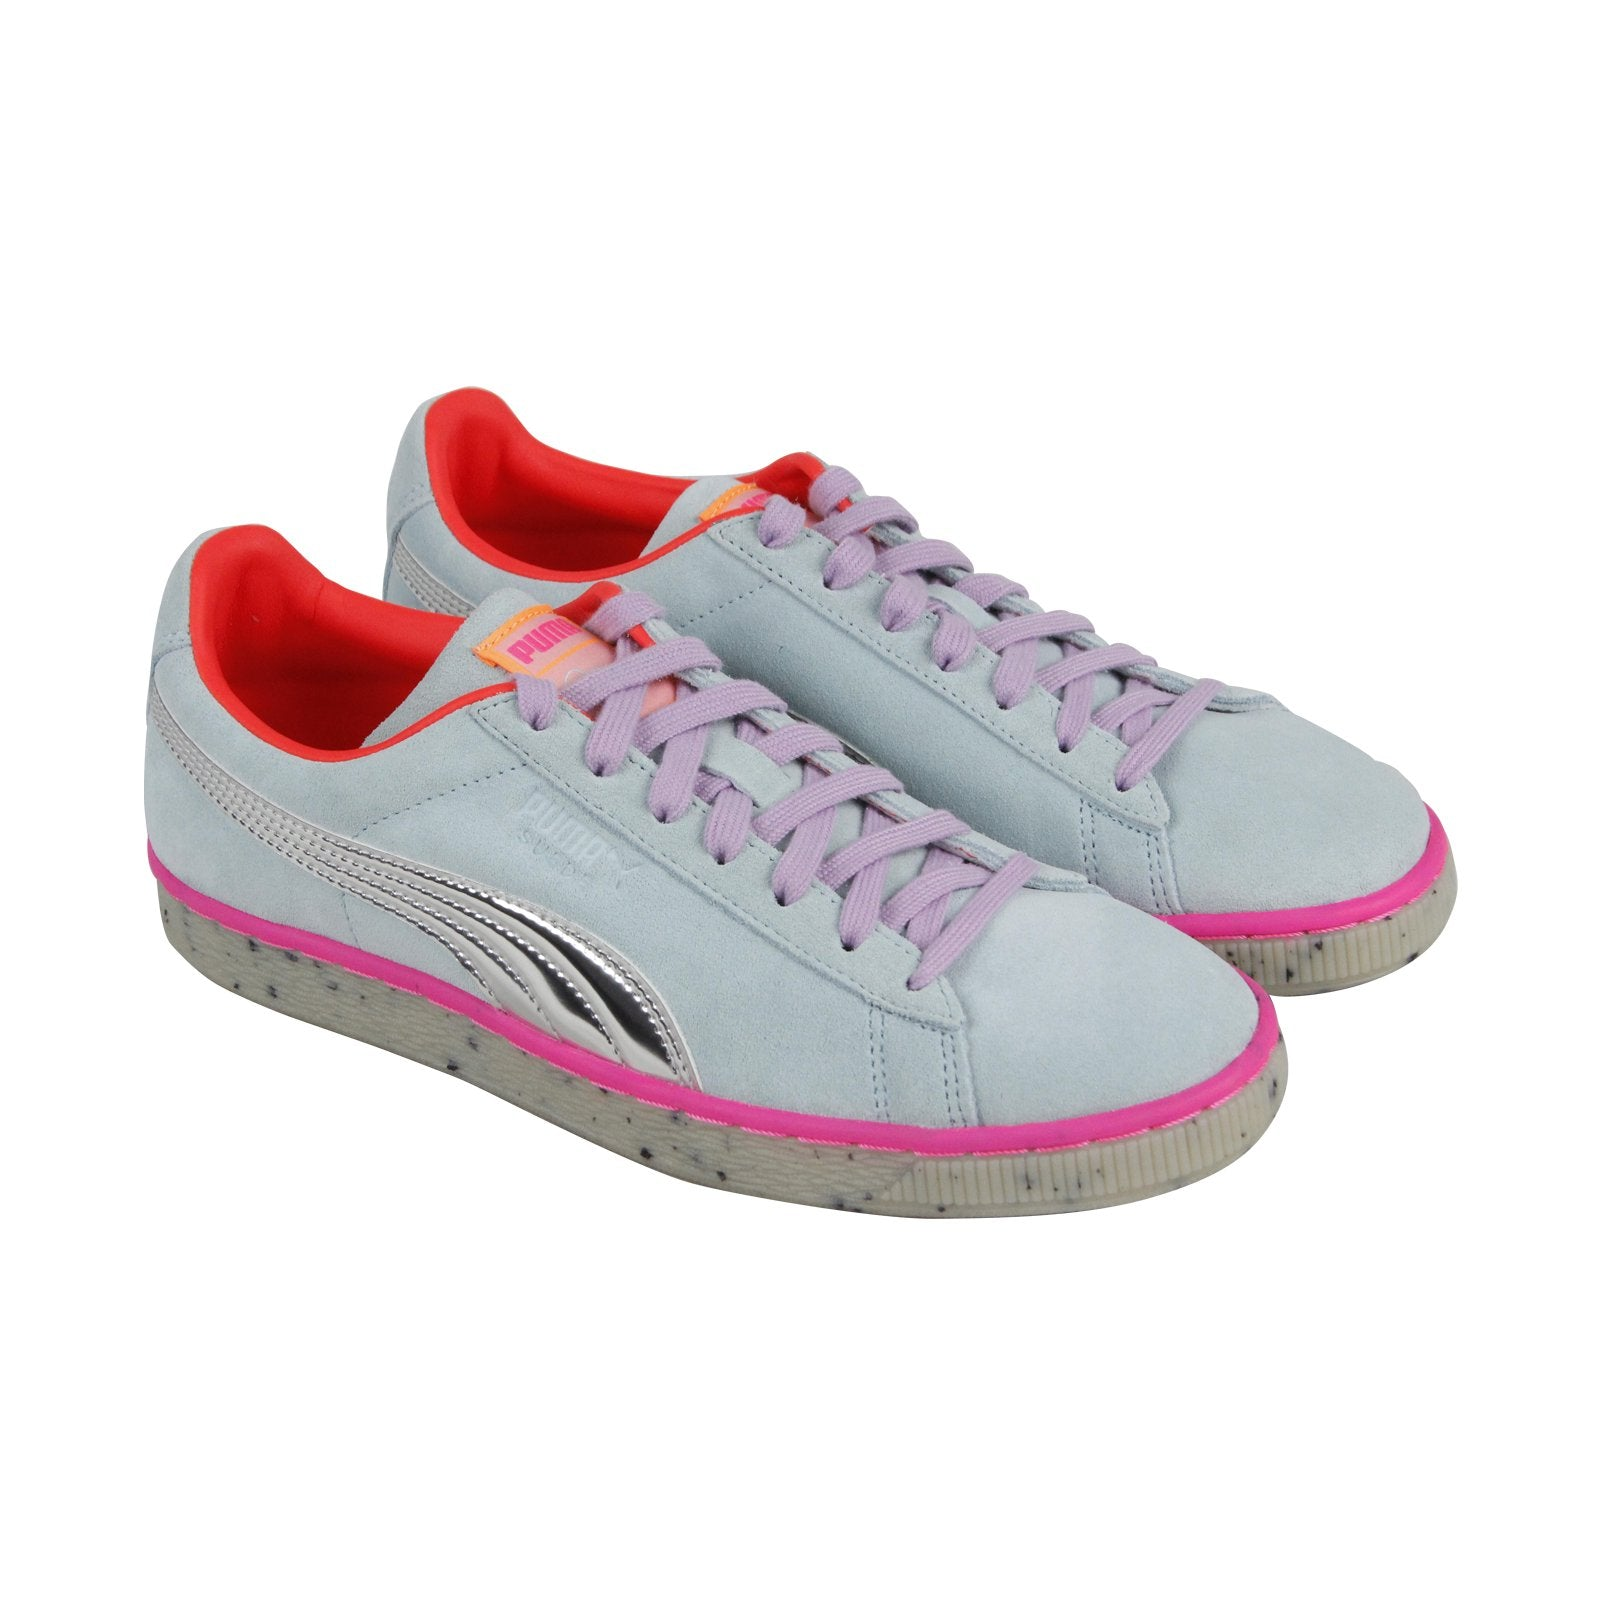 Puma Suede Candy Princess Sophia Webster Womens Blue Lace Up Sneakers Shoes